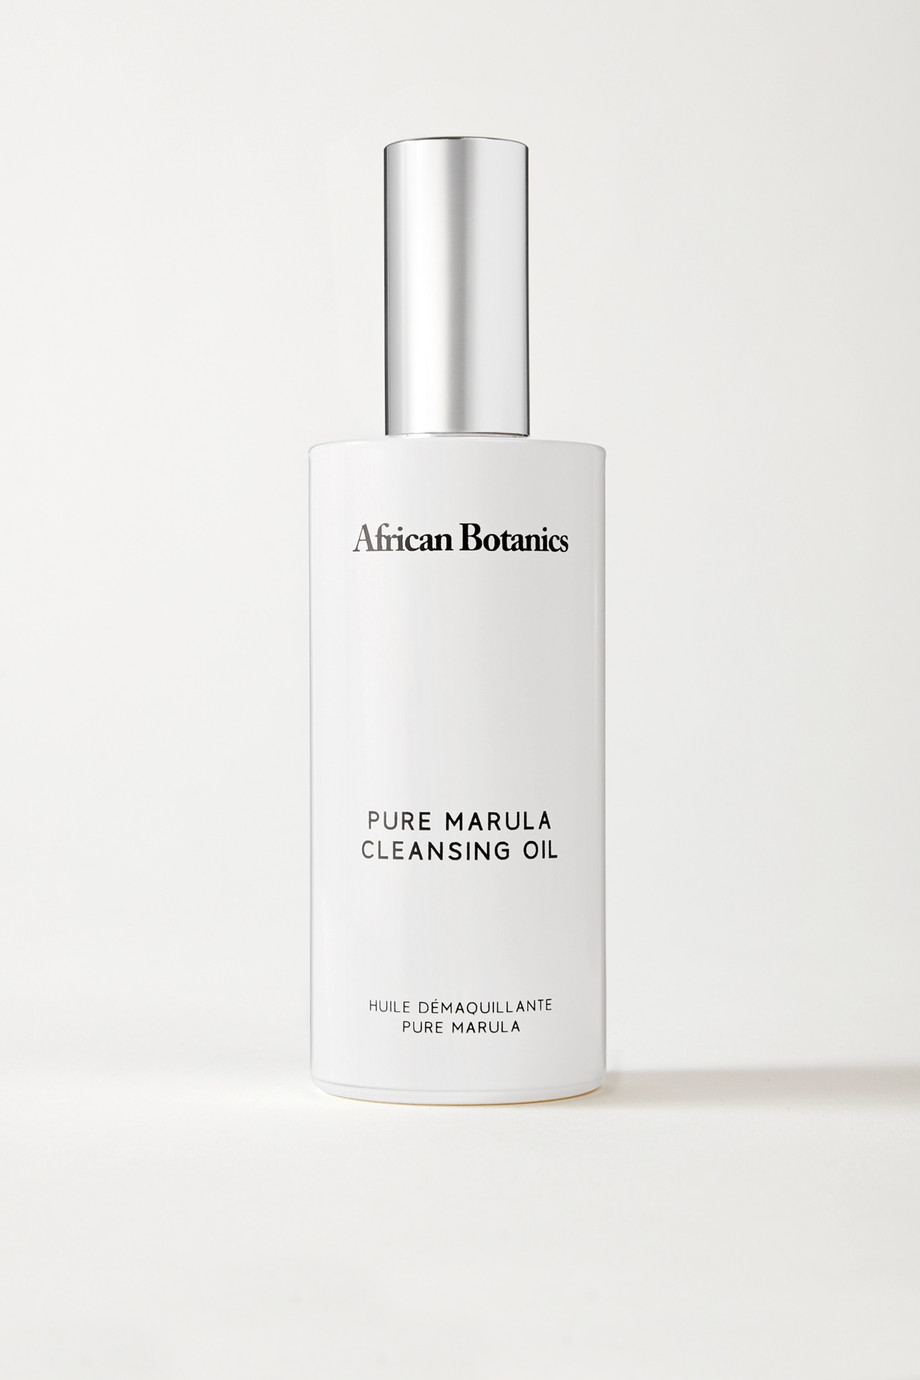 African Botanics Pure Marula Cleansing Oil, 100ml